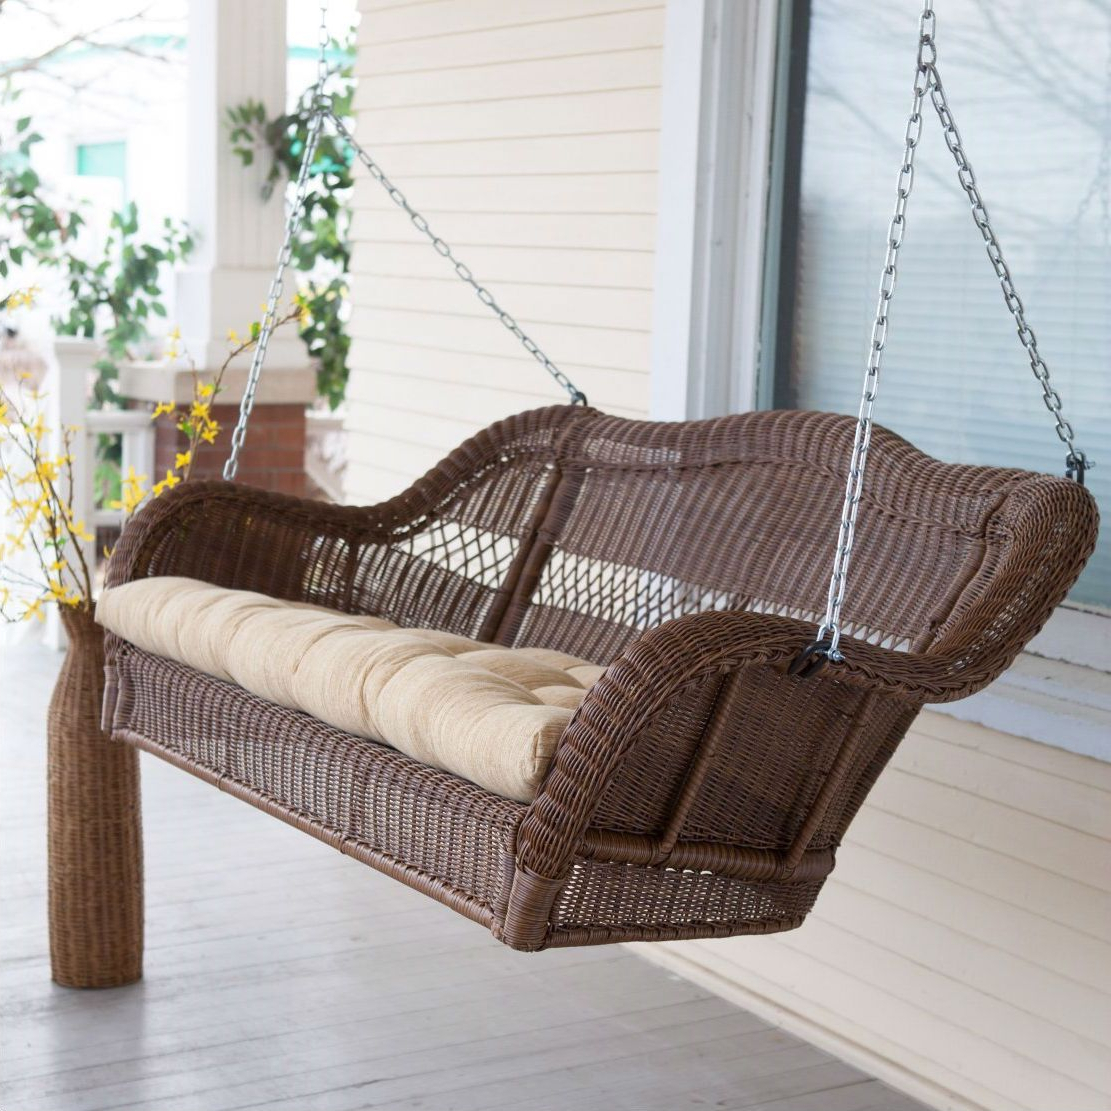 Walnut Brown All Weather Resin Wicker Porch Swing With Intended For Favorite Porch Swings With Chain (View 26 of 30)